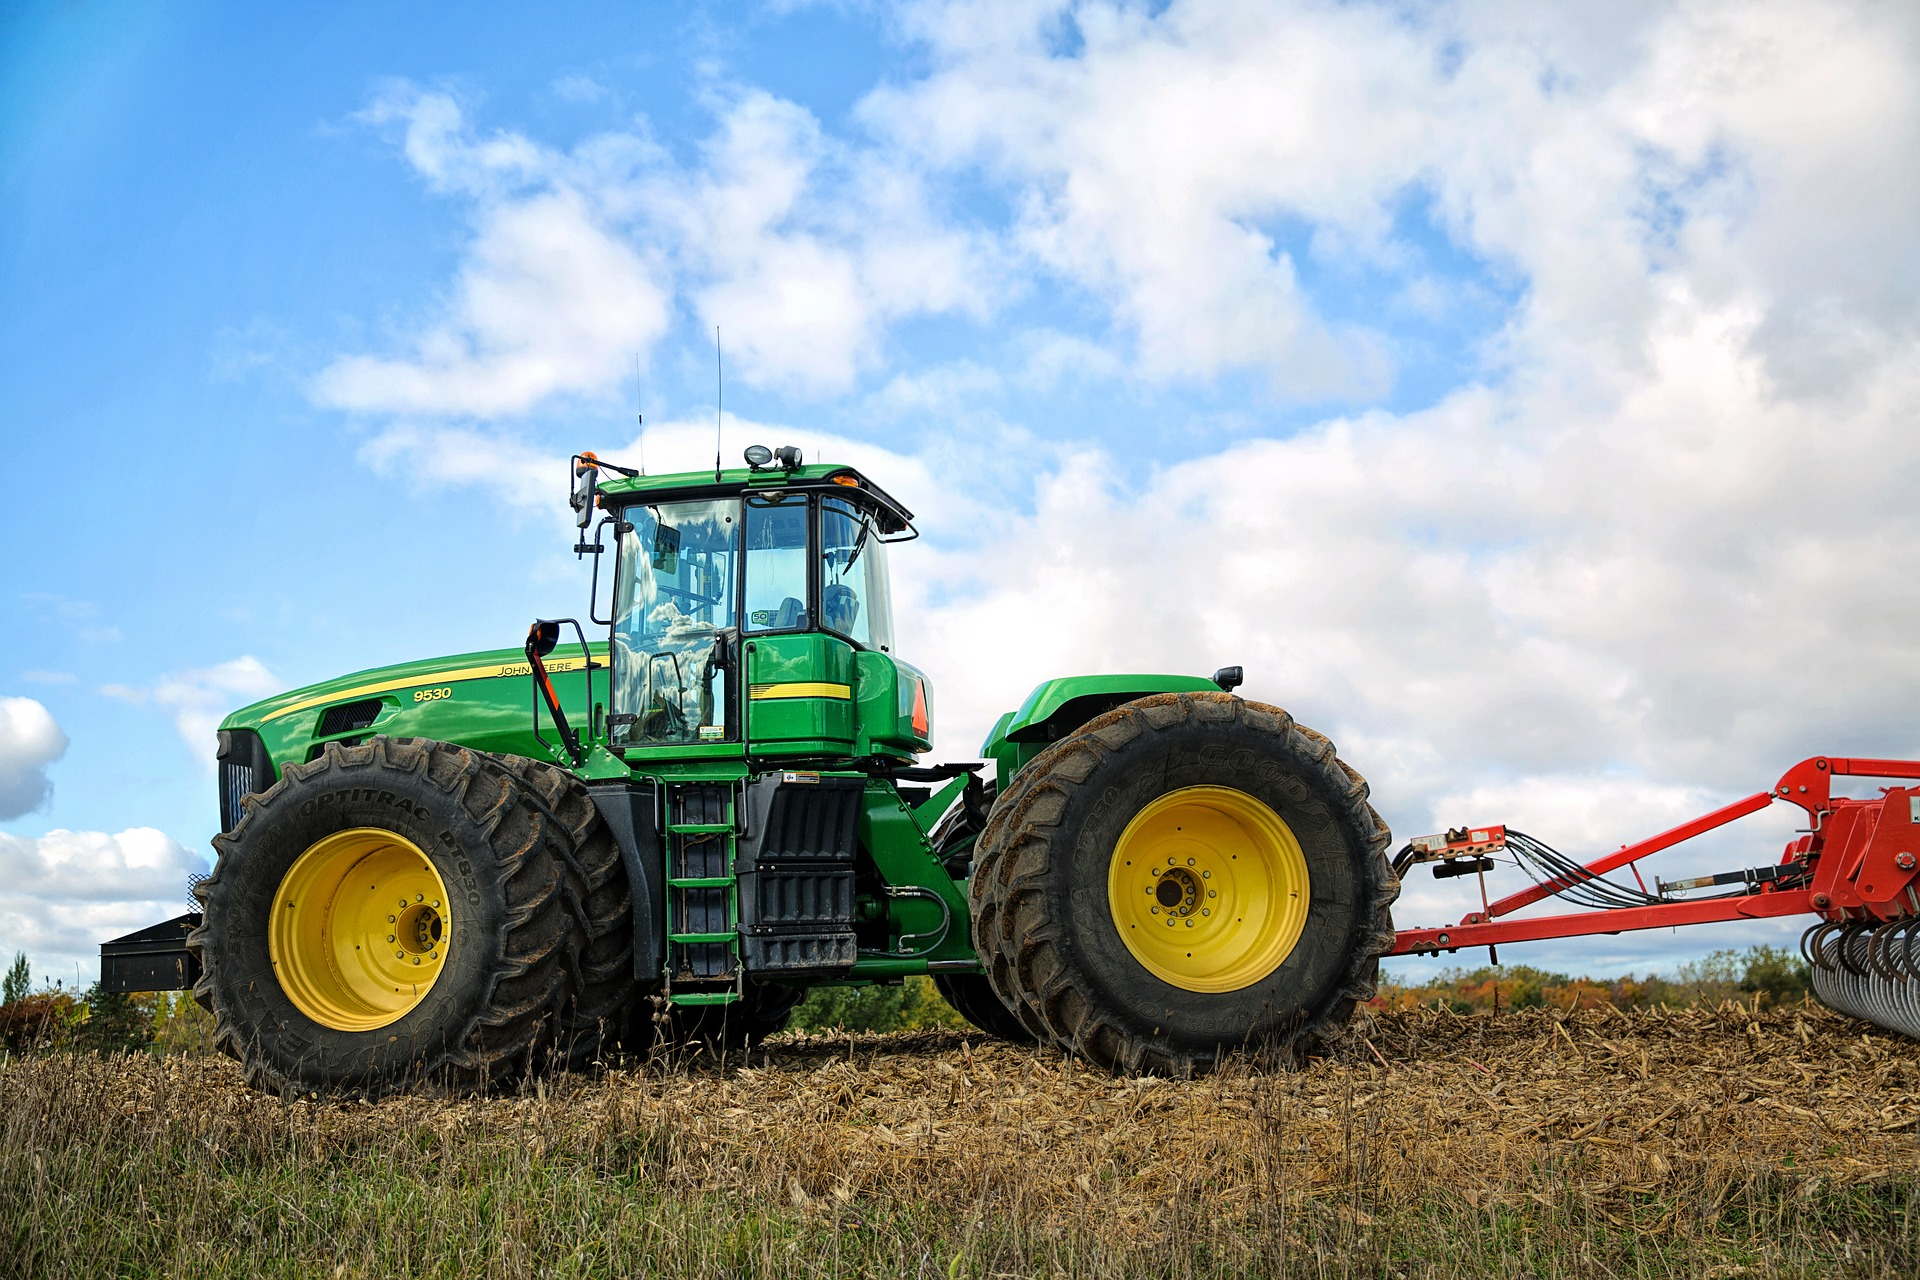 Tractor in the field photo